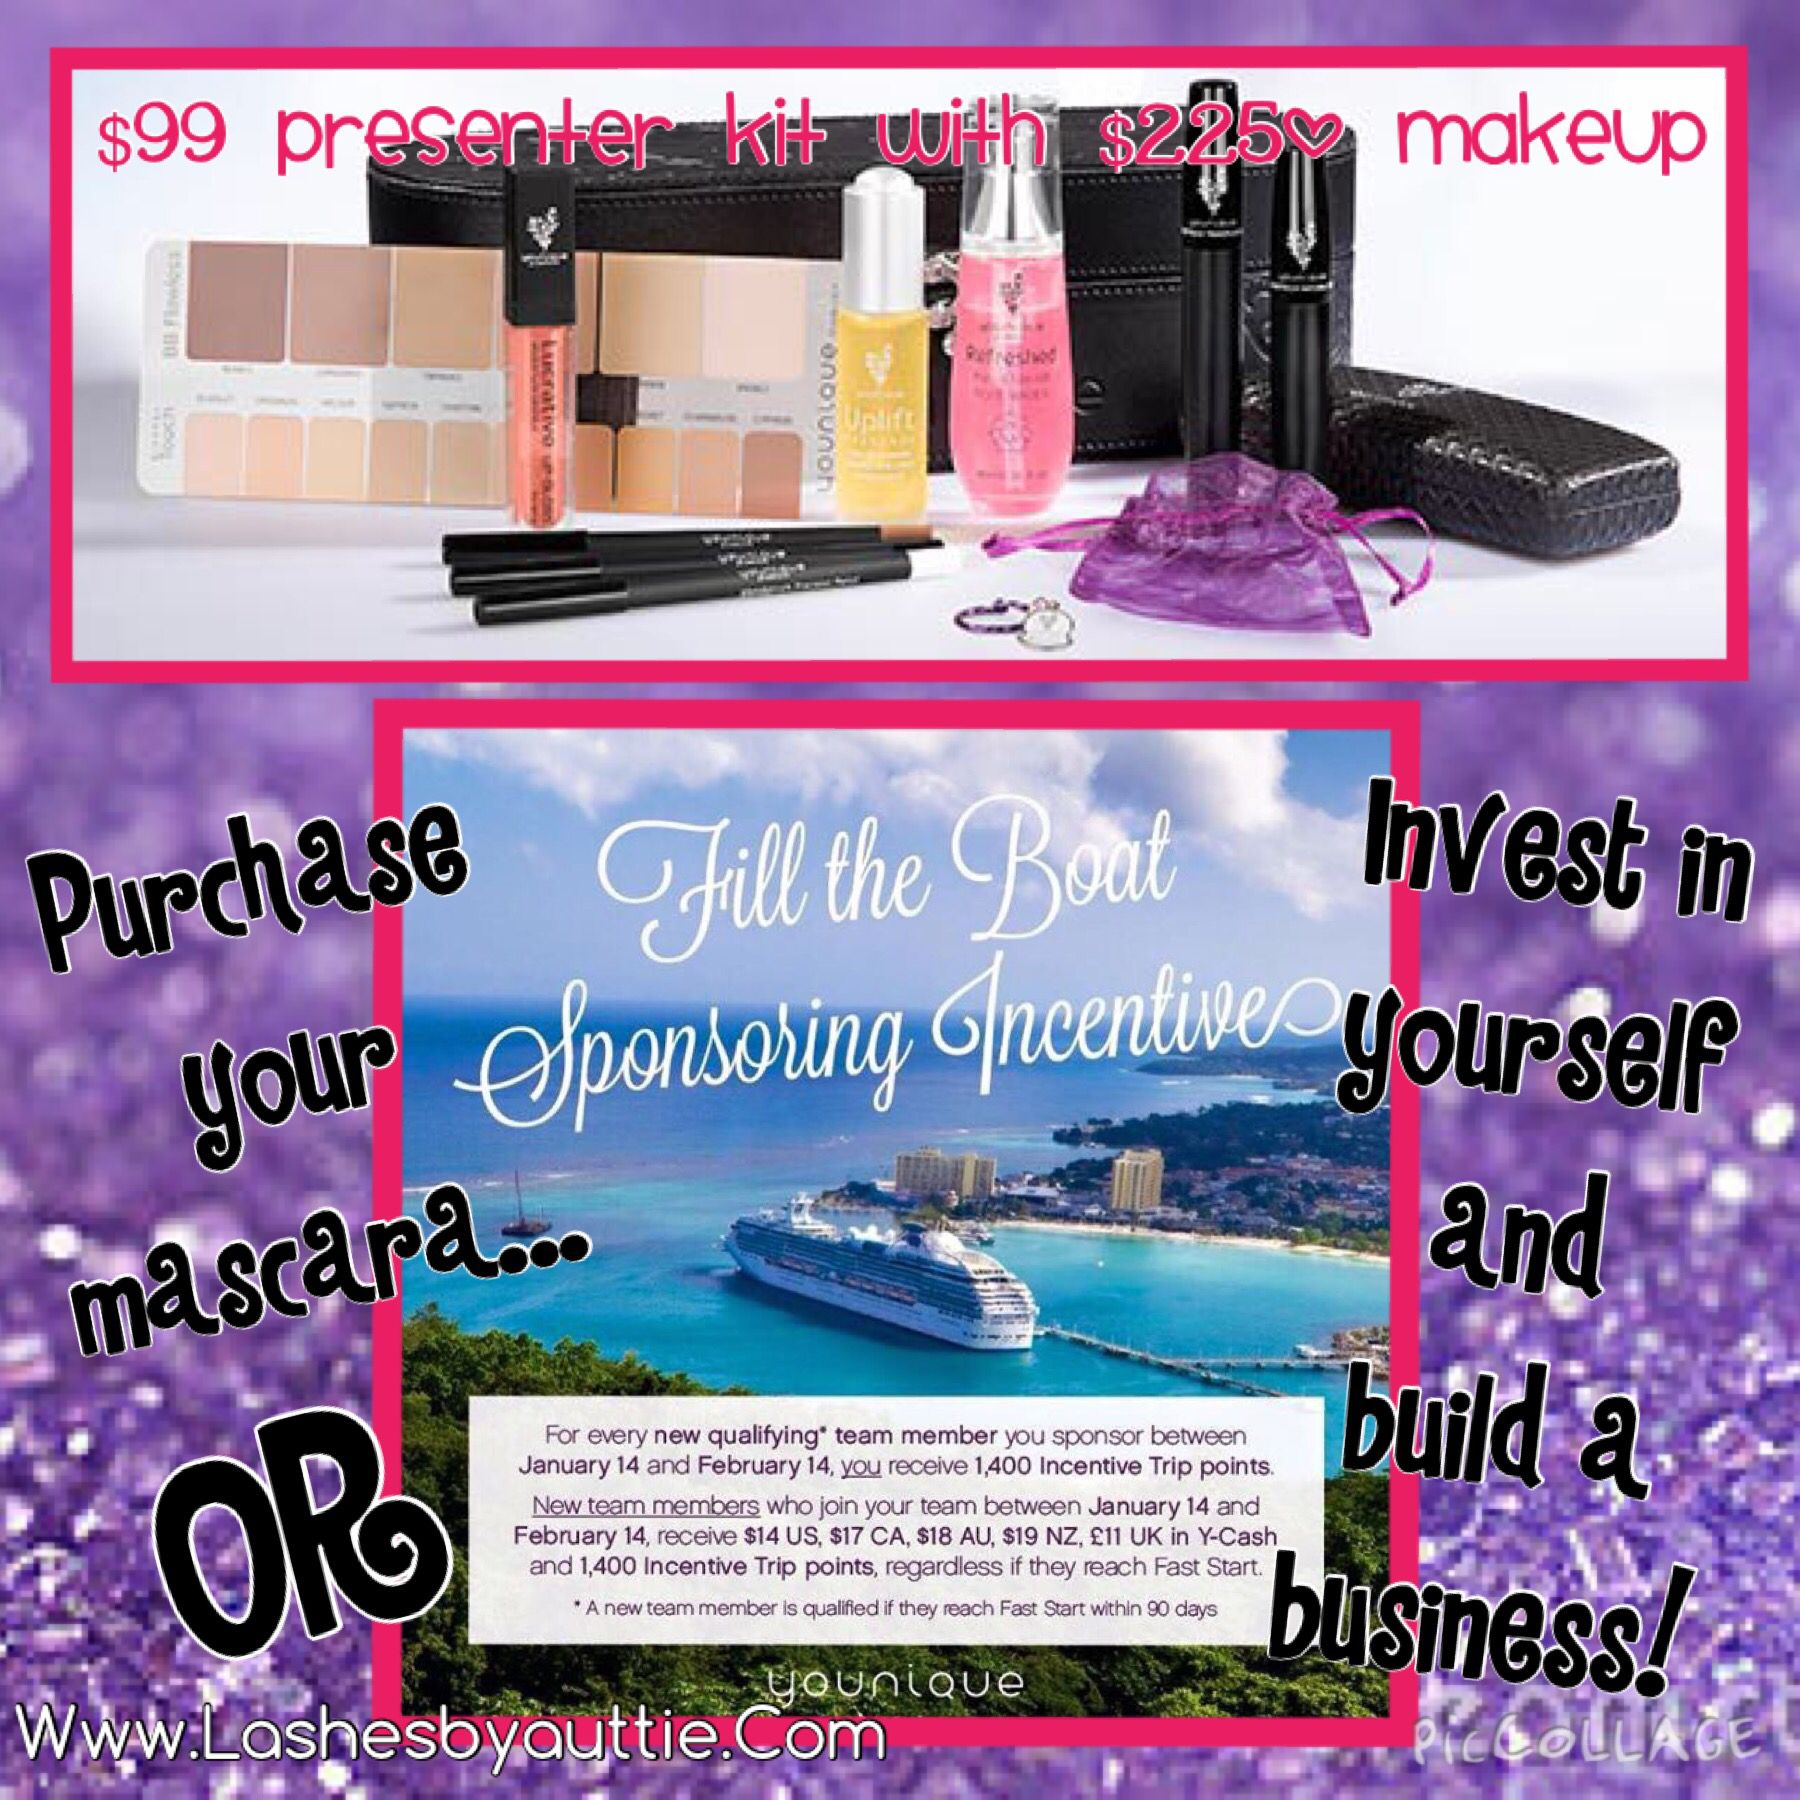 Buy your mascara... Or invest in yourself for your business! The choice is yours... Www.Lashesbyauttie.Com